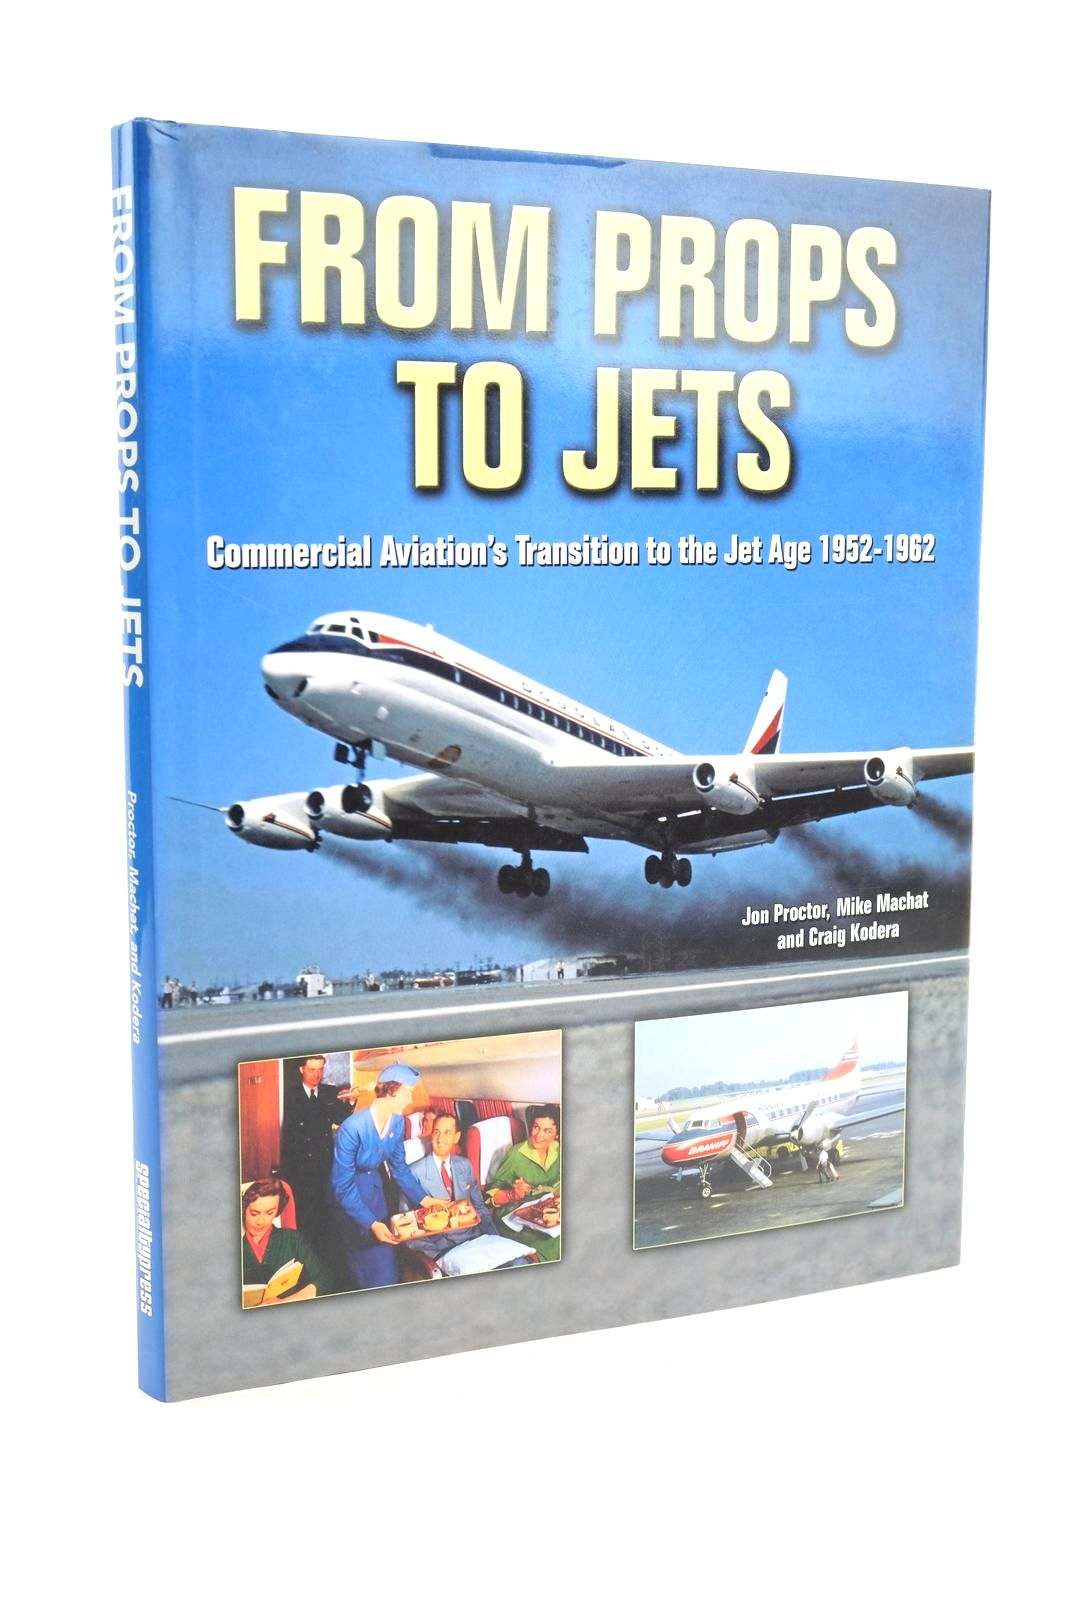 Photo of FROM PROPS TO JETS written by Proctor, Jon Machat, Mike Kodera, Craig published by Speciality Press (STOCK CODE: 1320138)  for sale by Stella & Rose's Books